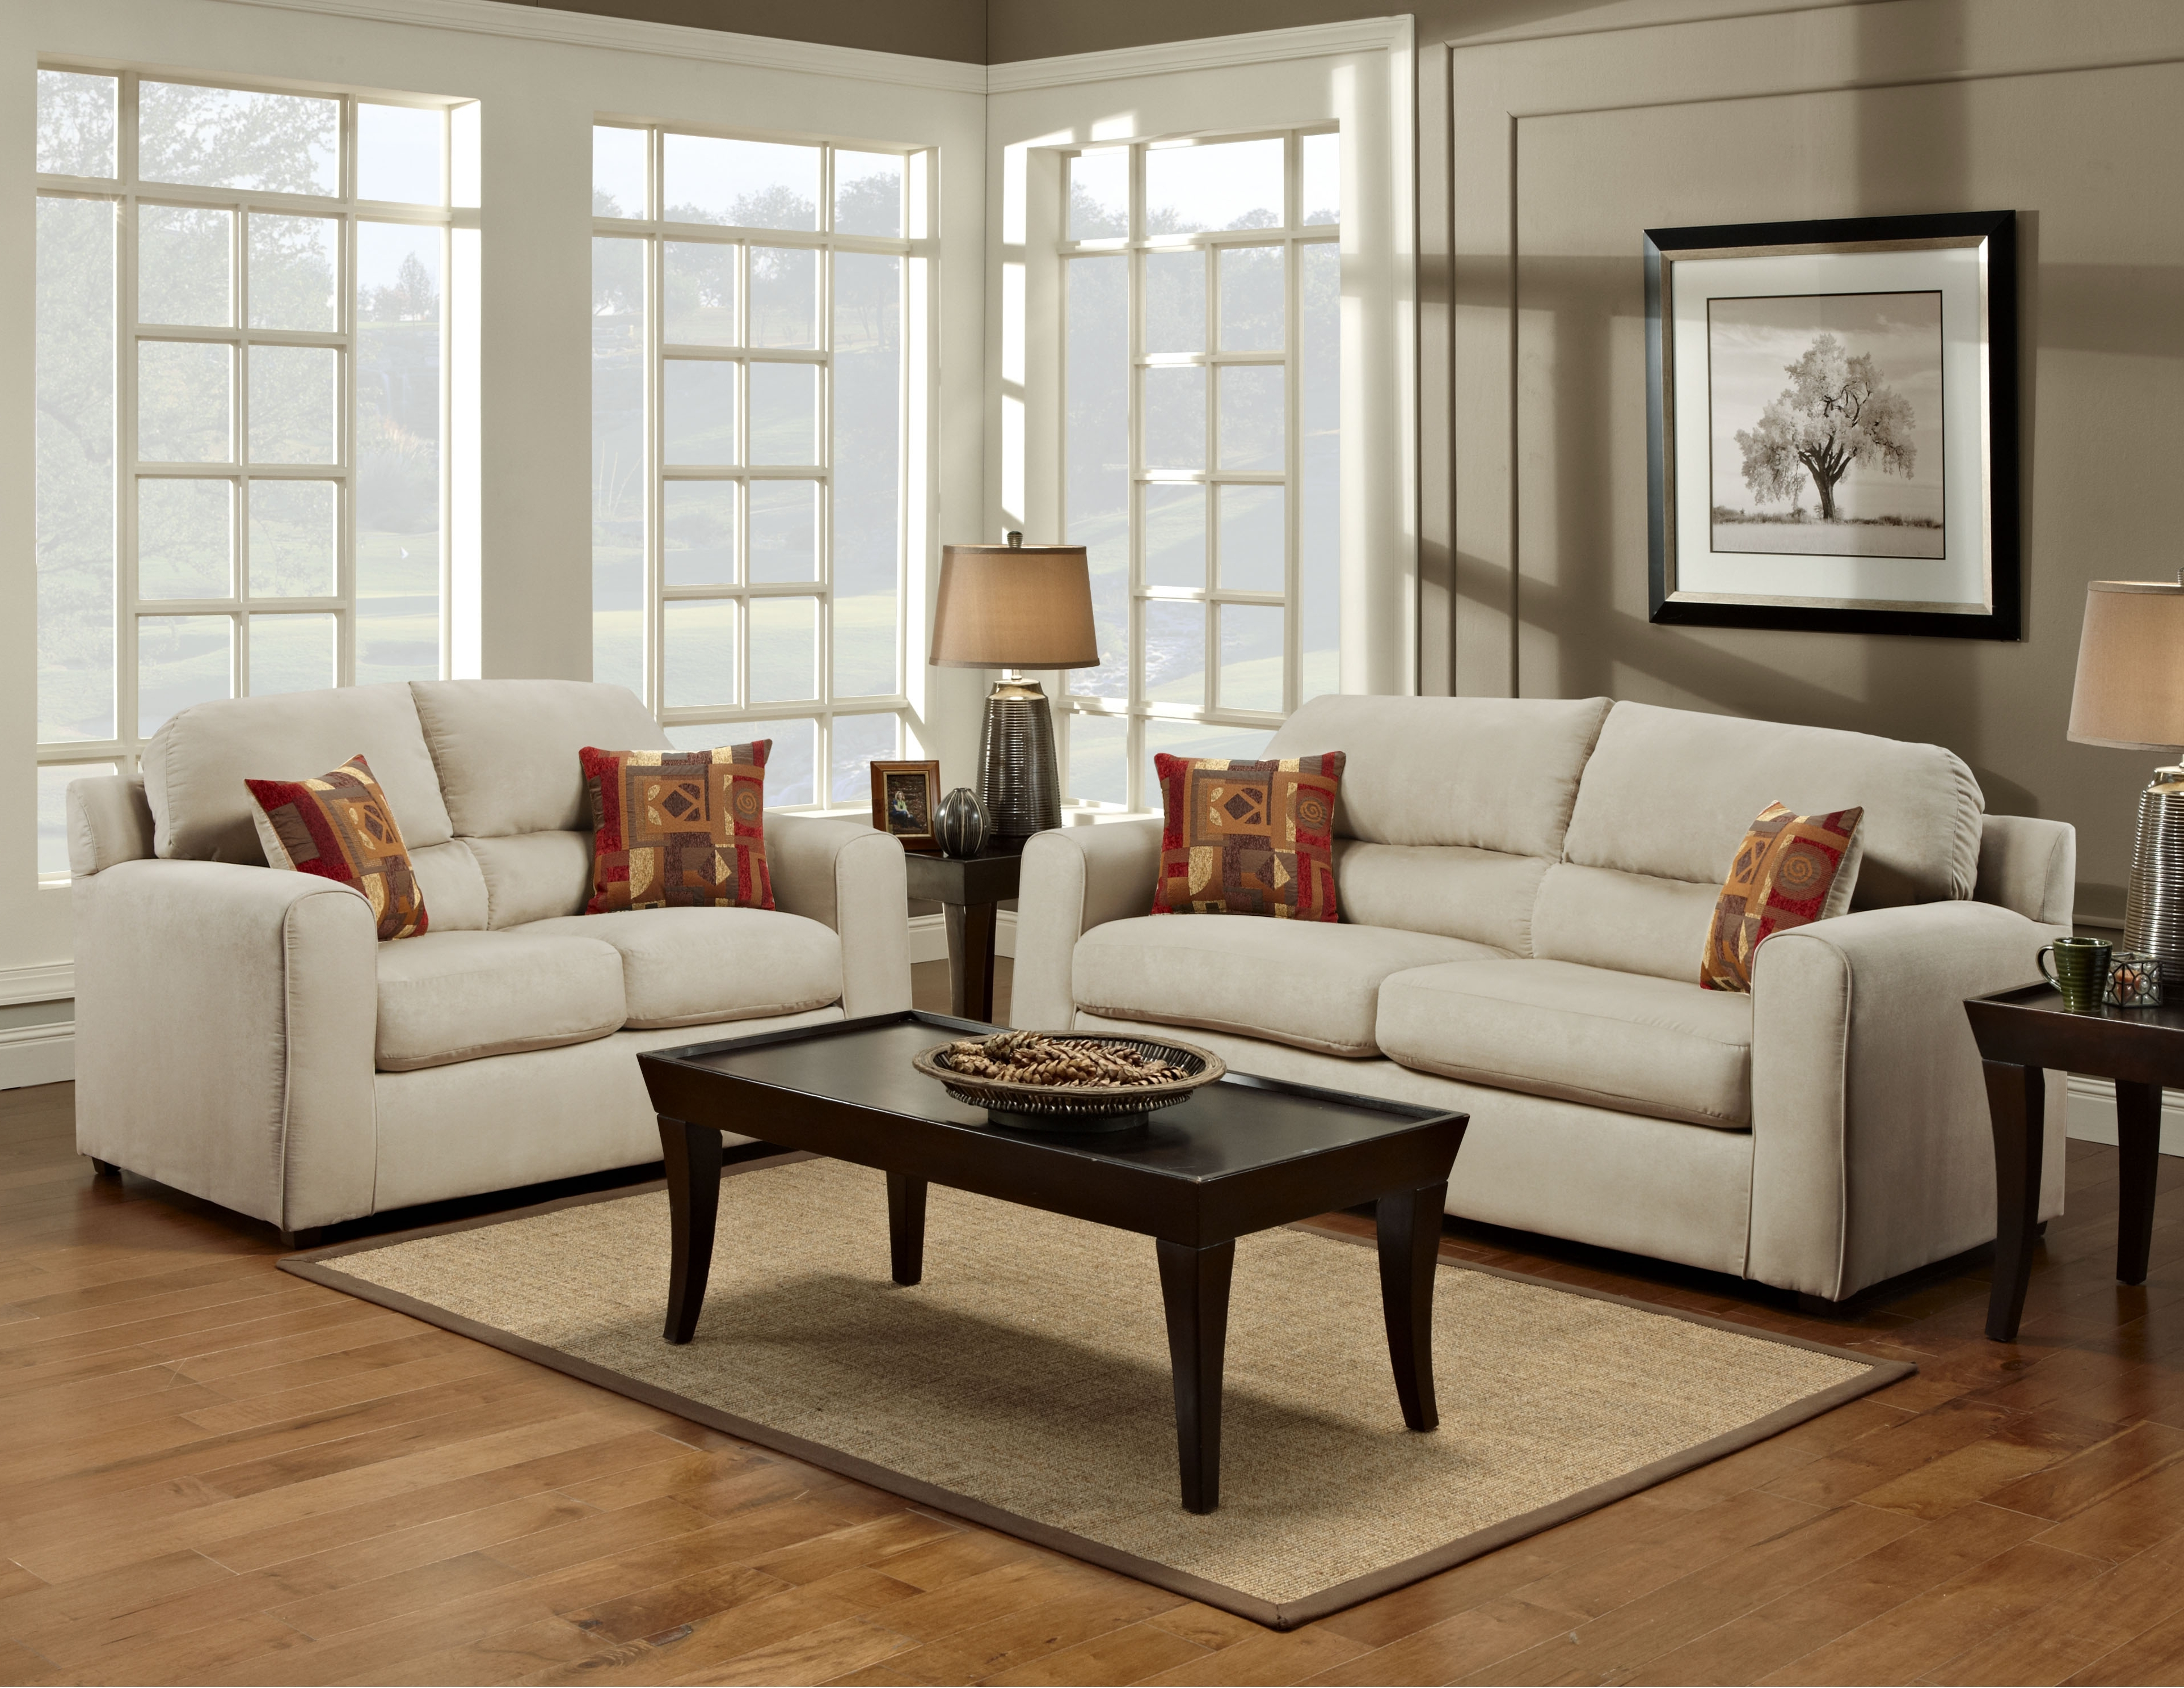 Well Liked Furniture: Miraculous Nashville Furniture With Nice Design For Within Murfreesboro Tn Sectional Sofas (View 20 of 20)